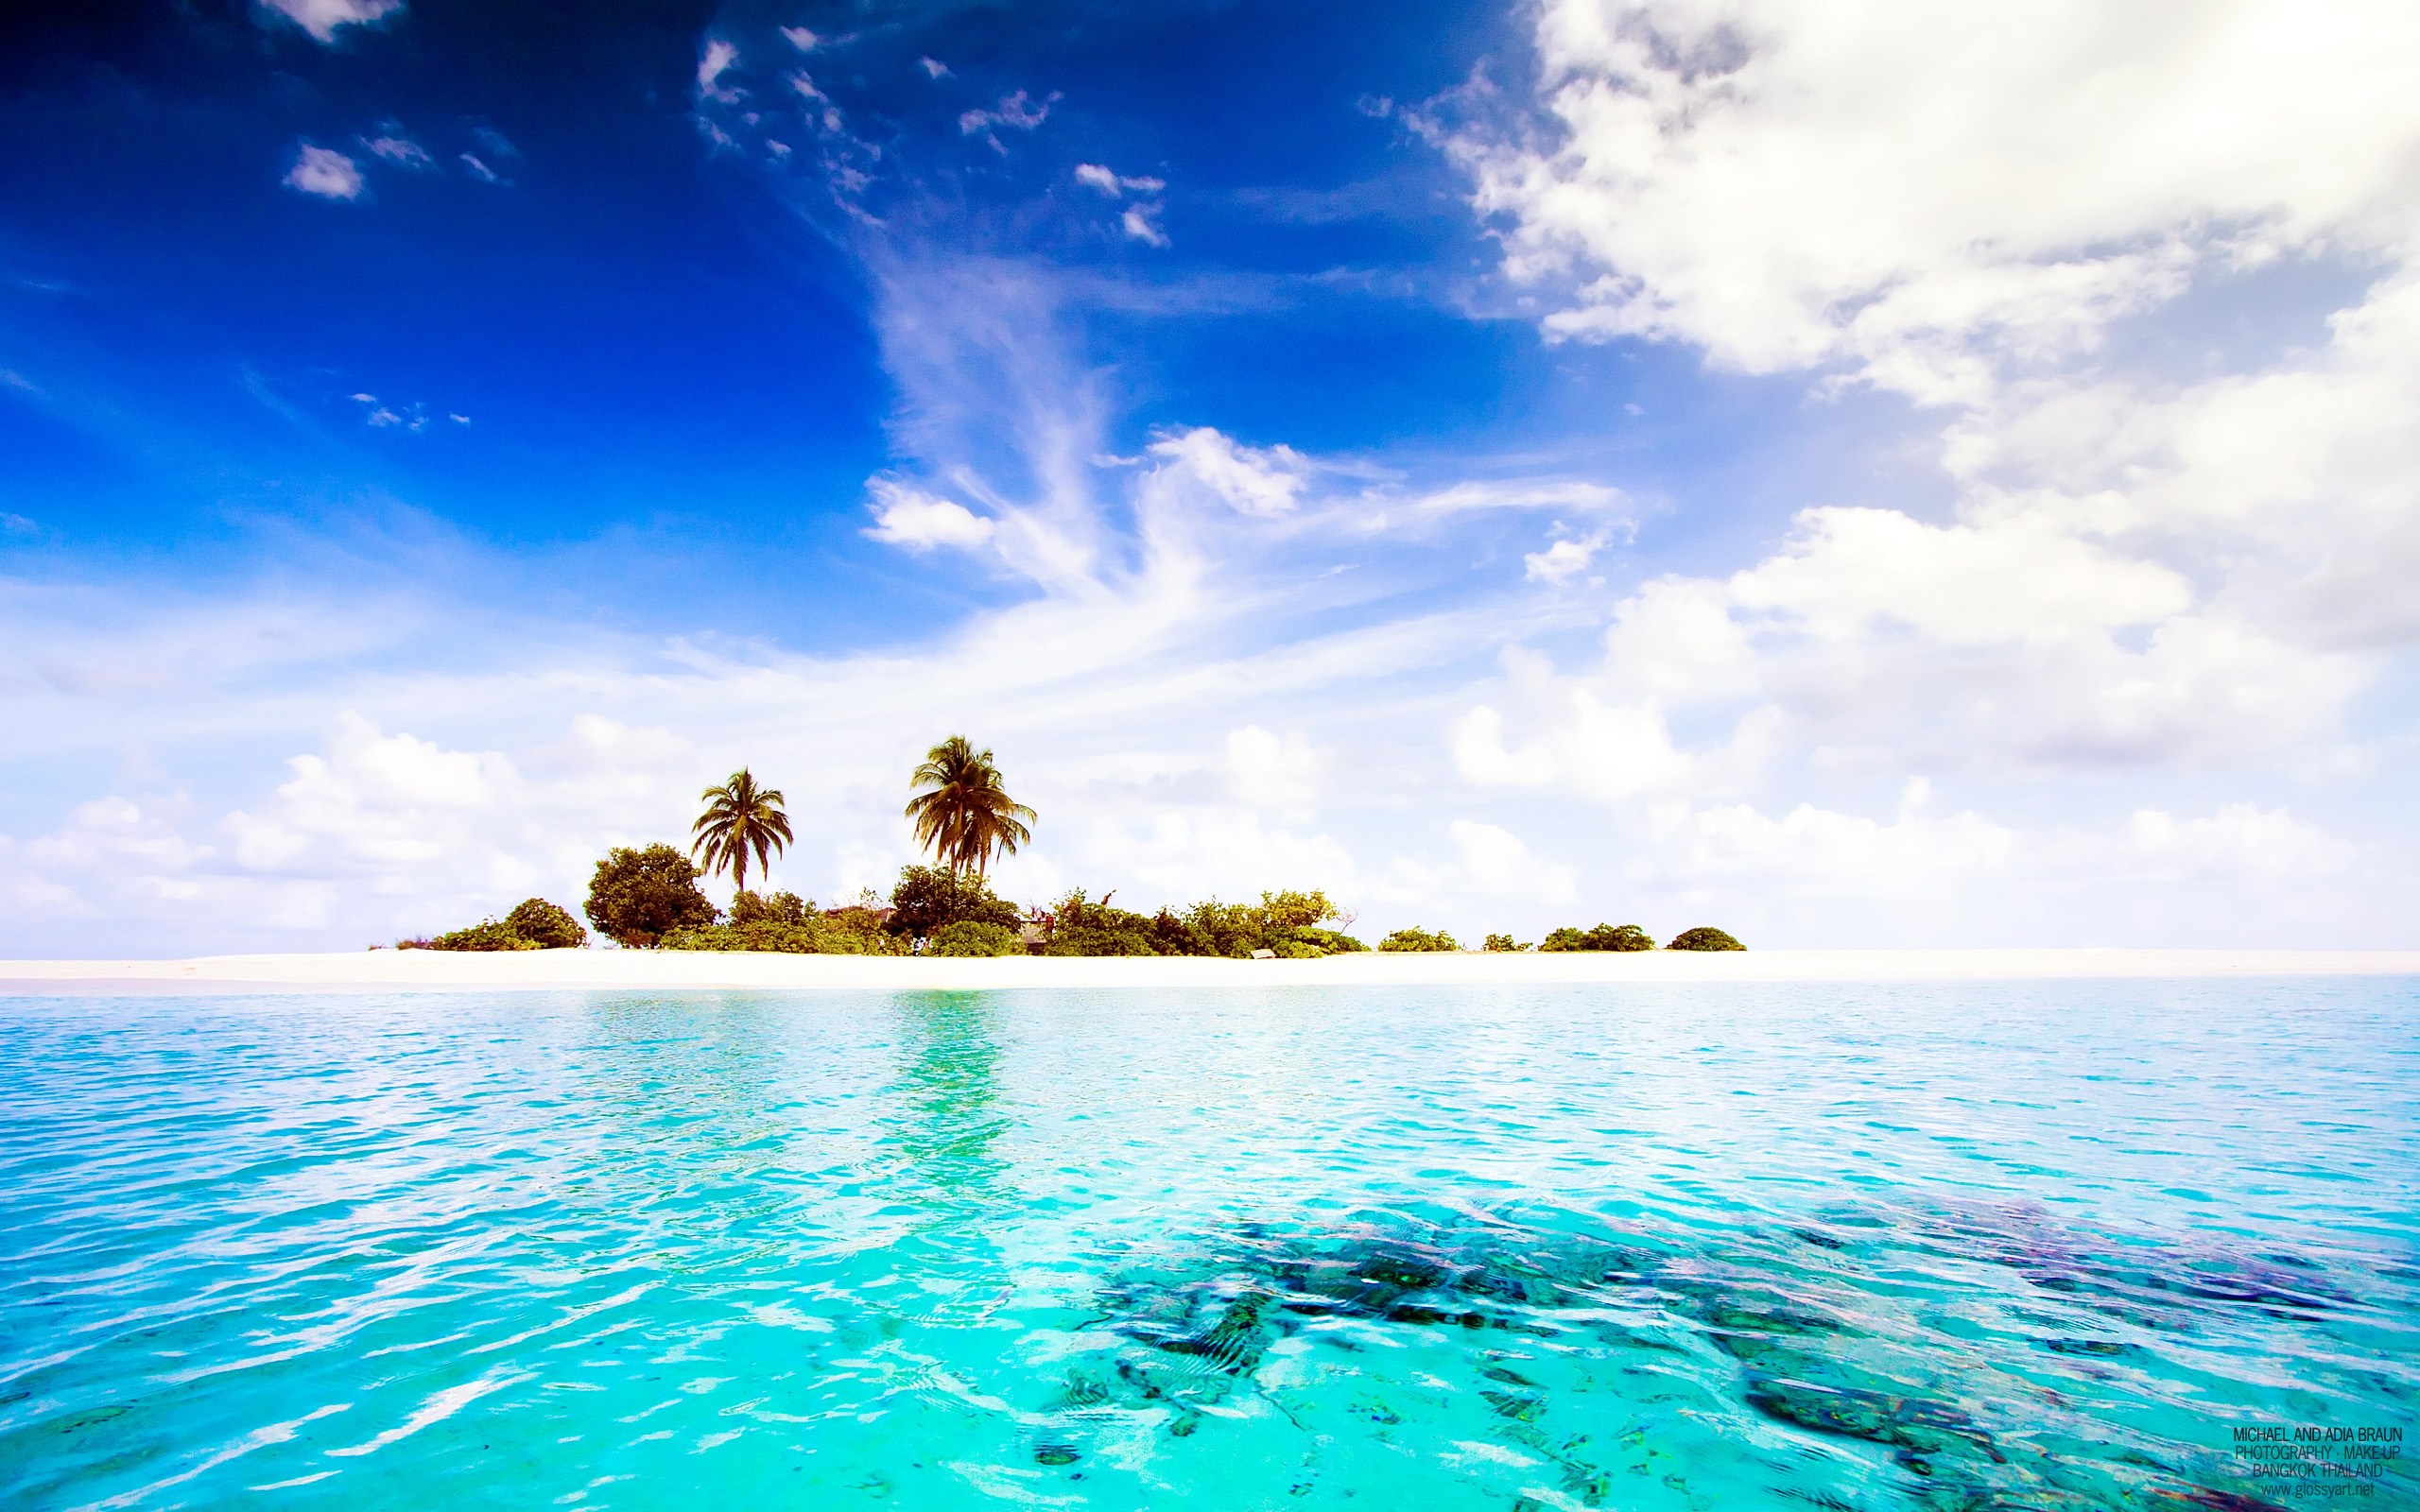 Maldives Diggiri Island Wallpapers HD Wallpapers 2560x1600